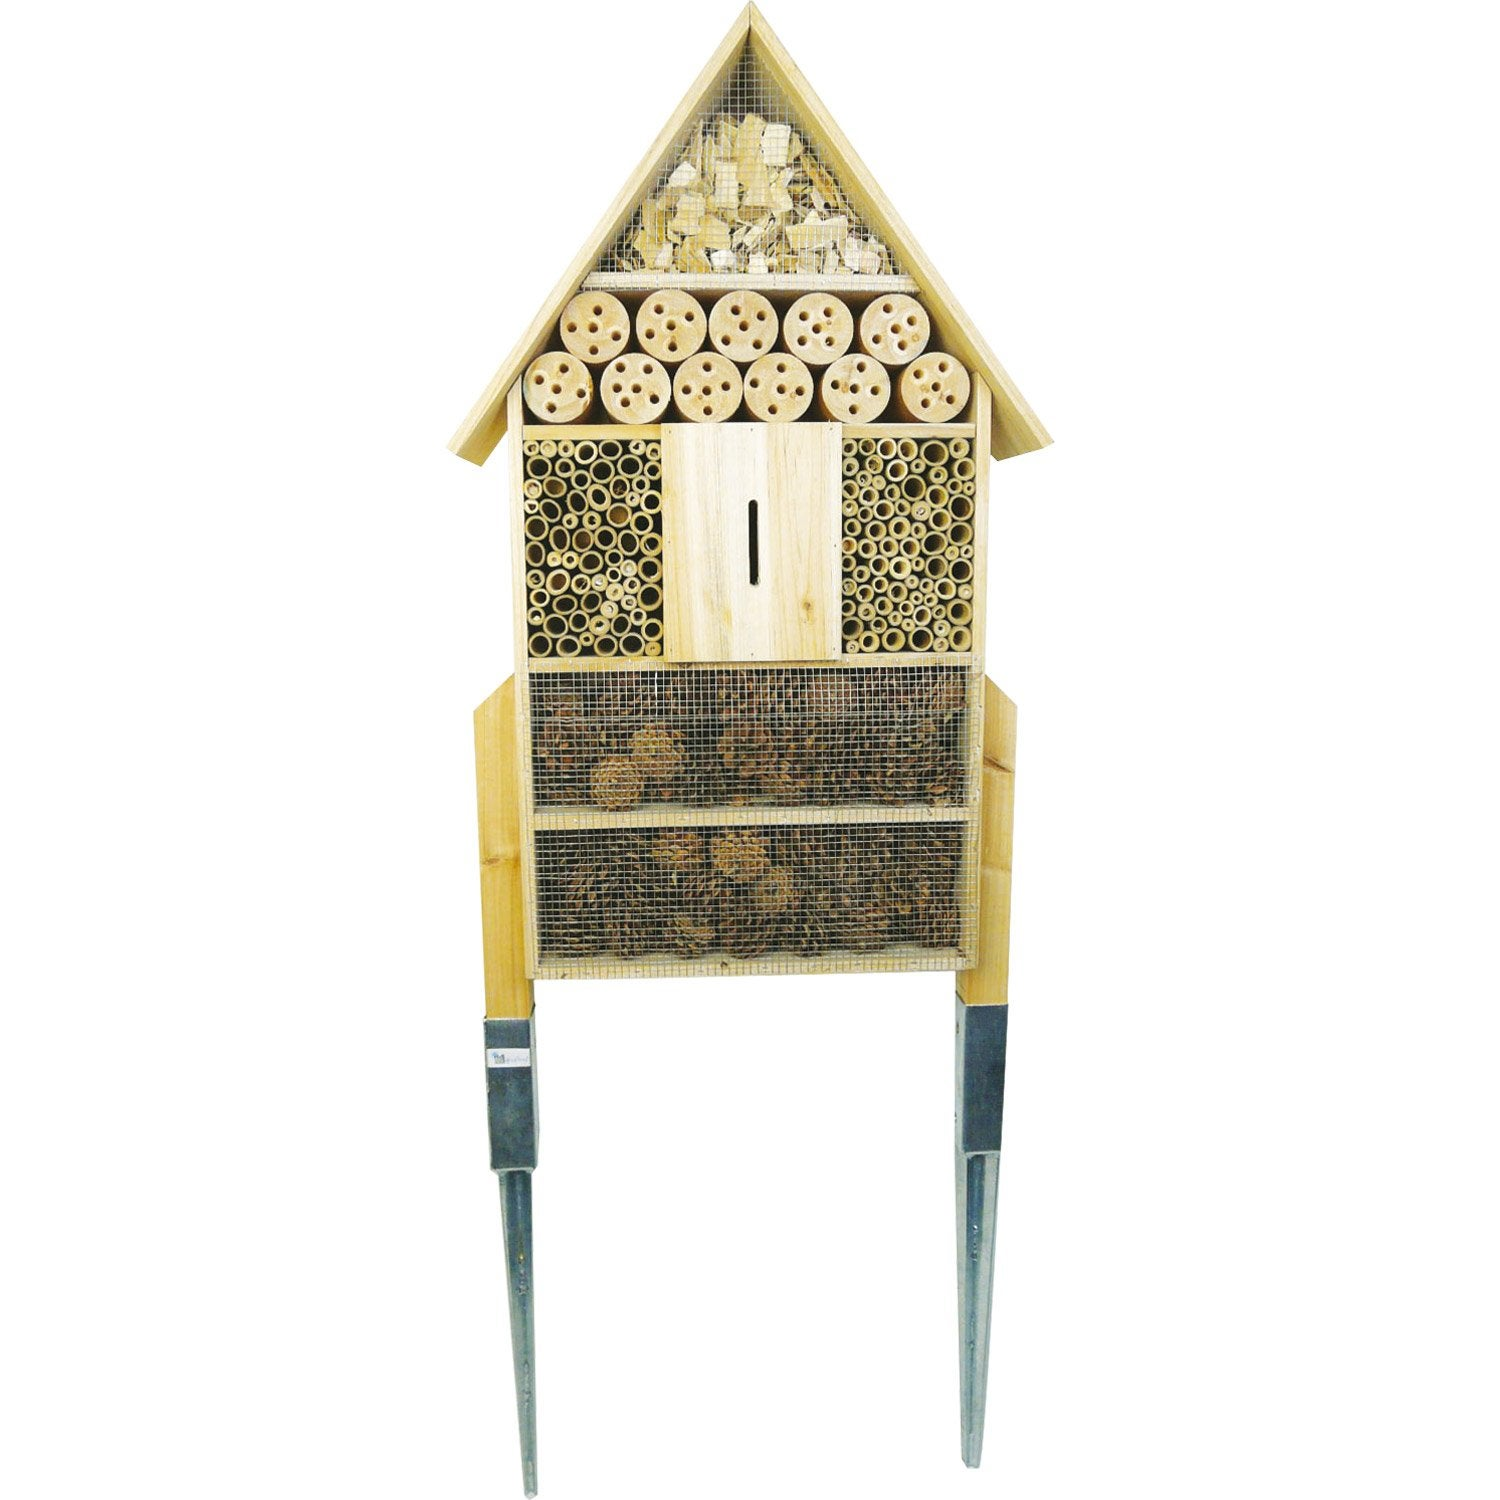 H tel insectes pfchigf130 bois leroy merlin for Hotel a insecte acheter